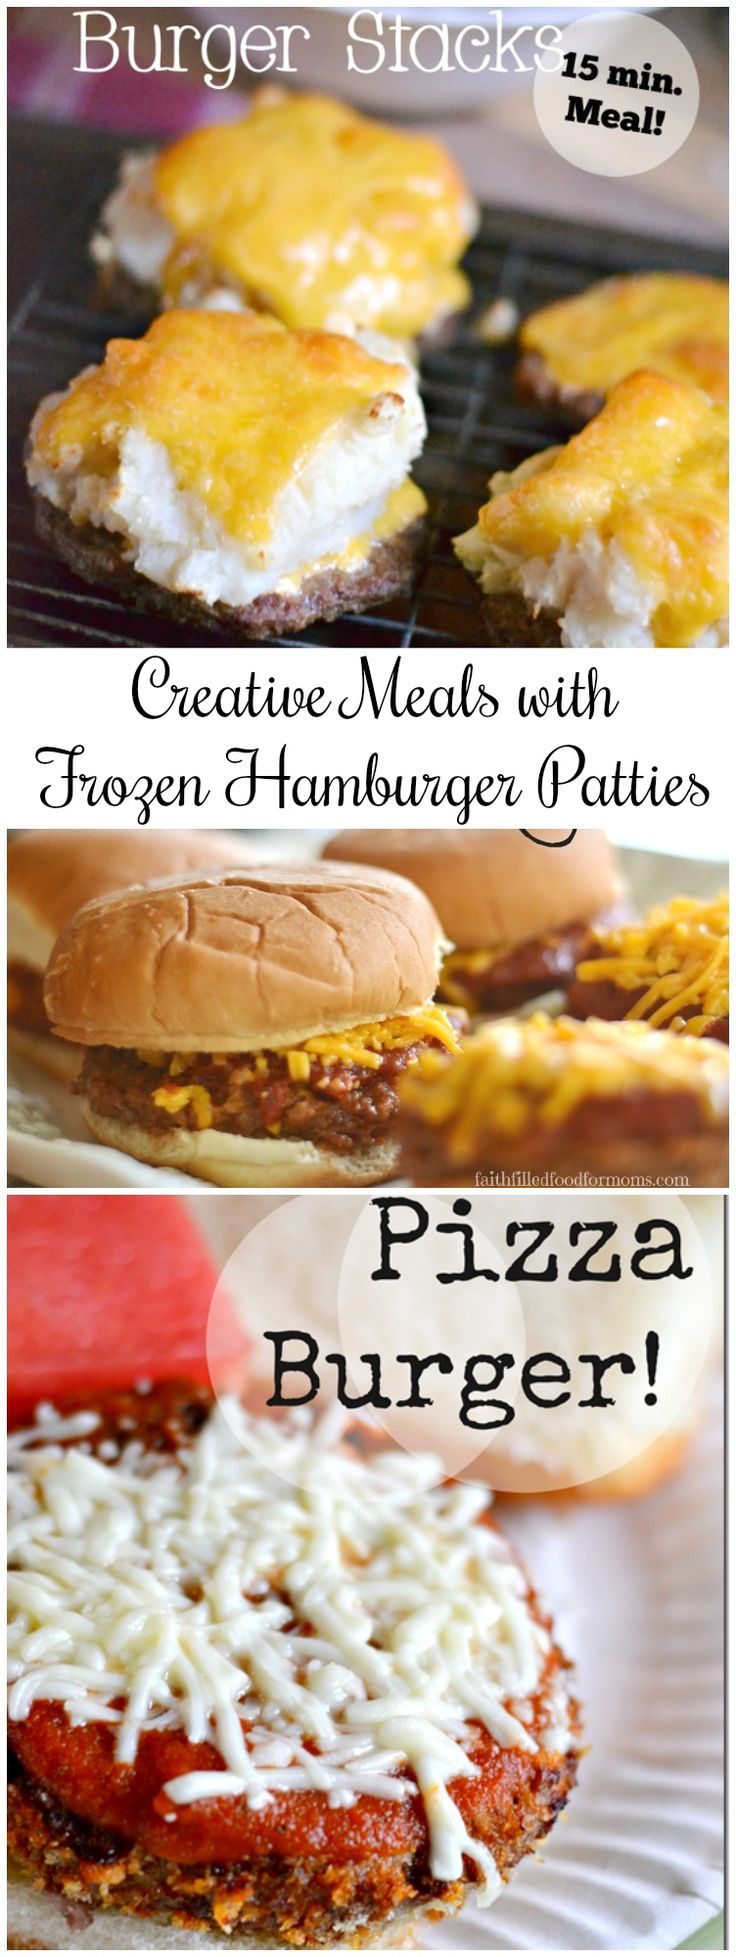 Creative Meals with Hamburger Patties! Ever get tired of the same old hamburgers and wonder what to make with hamburger patties? Well there are lots of yummy meals using frozen hamburger patties that our family eats all the time AND they are so easy! Check out these recipes!  #burger #frozen #recipe